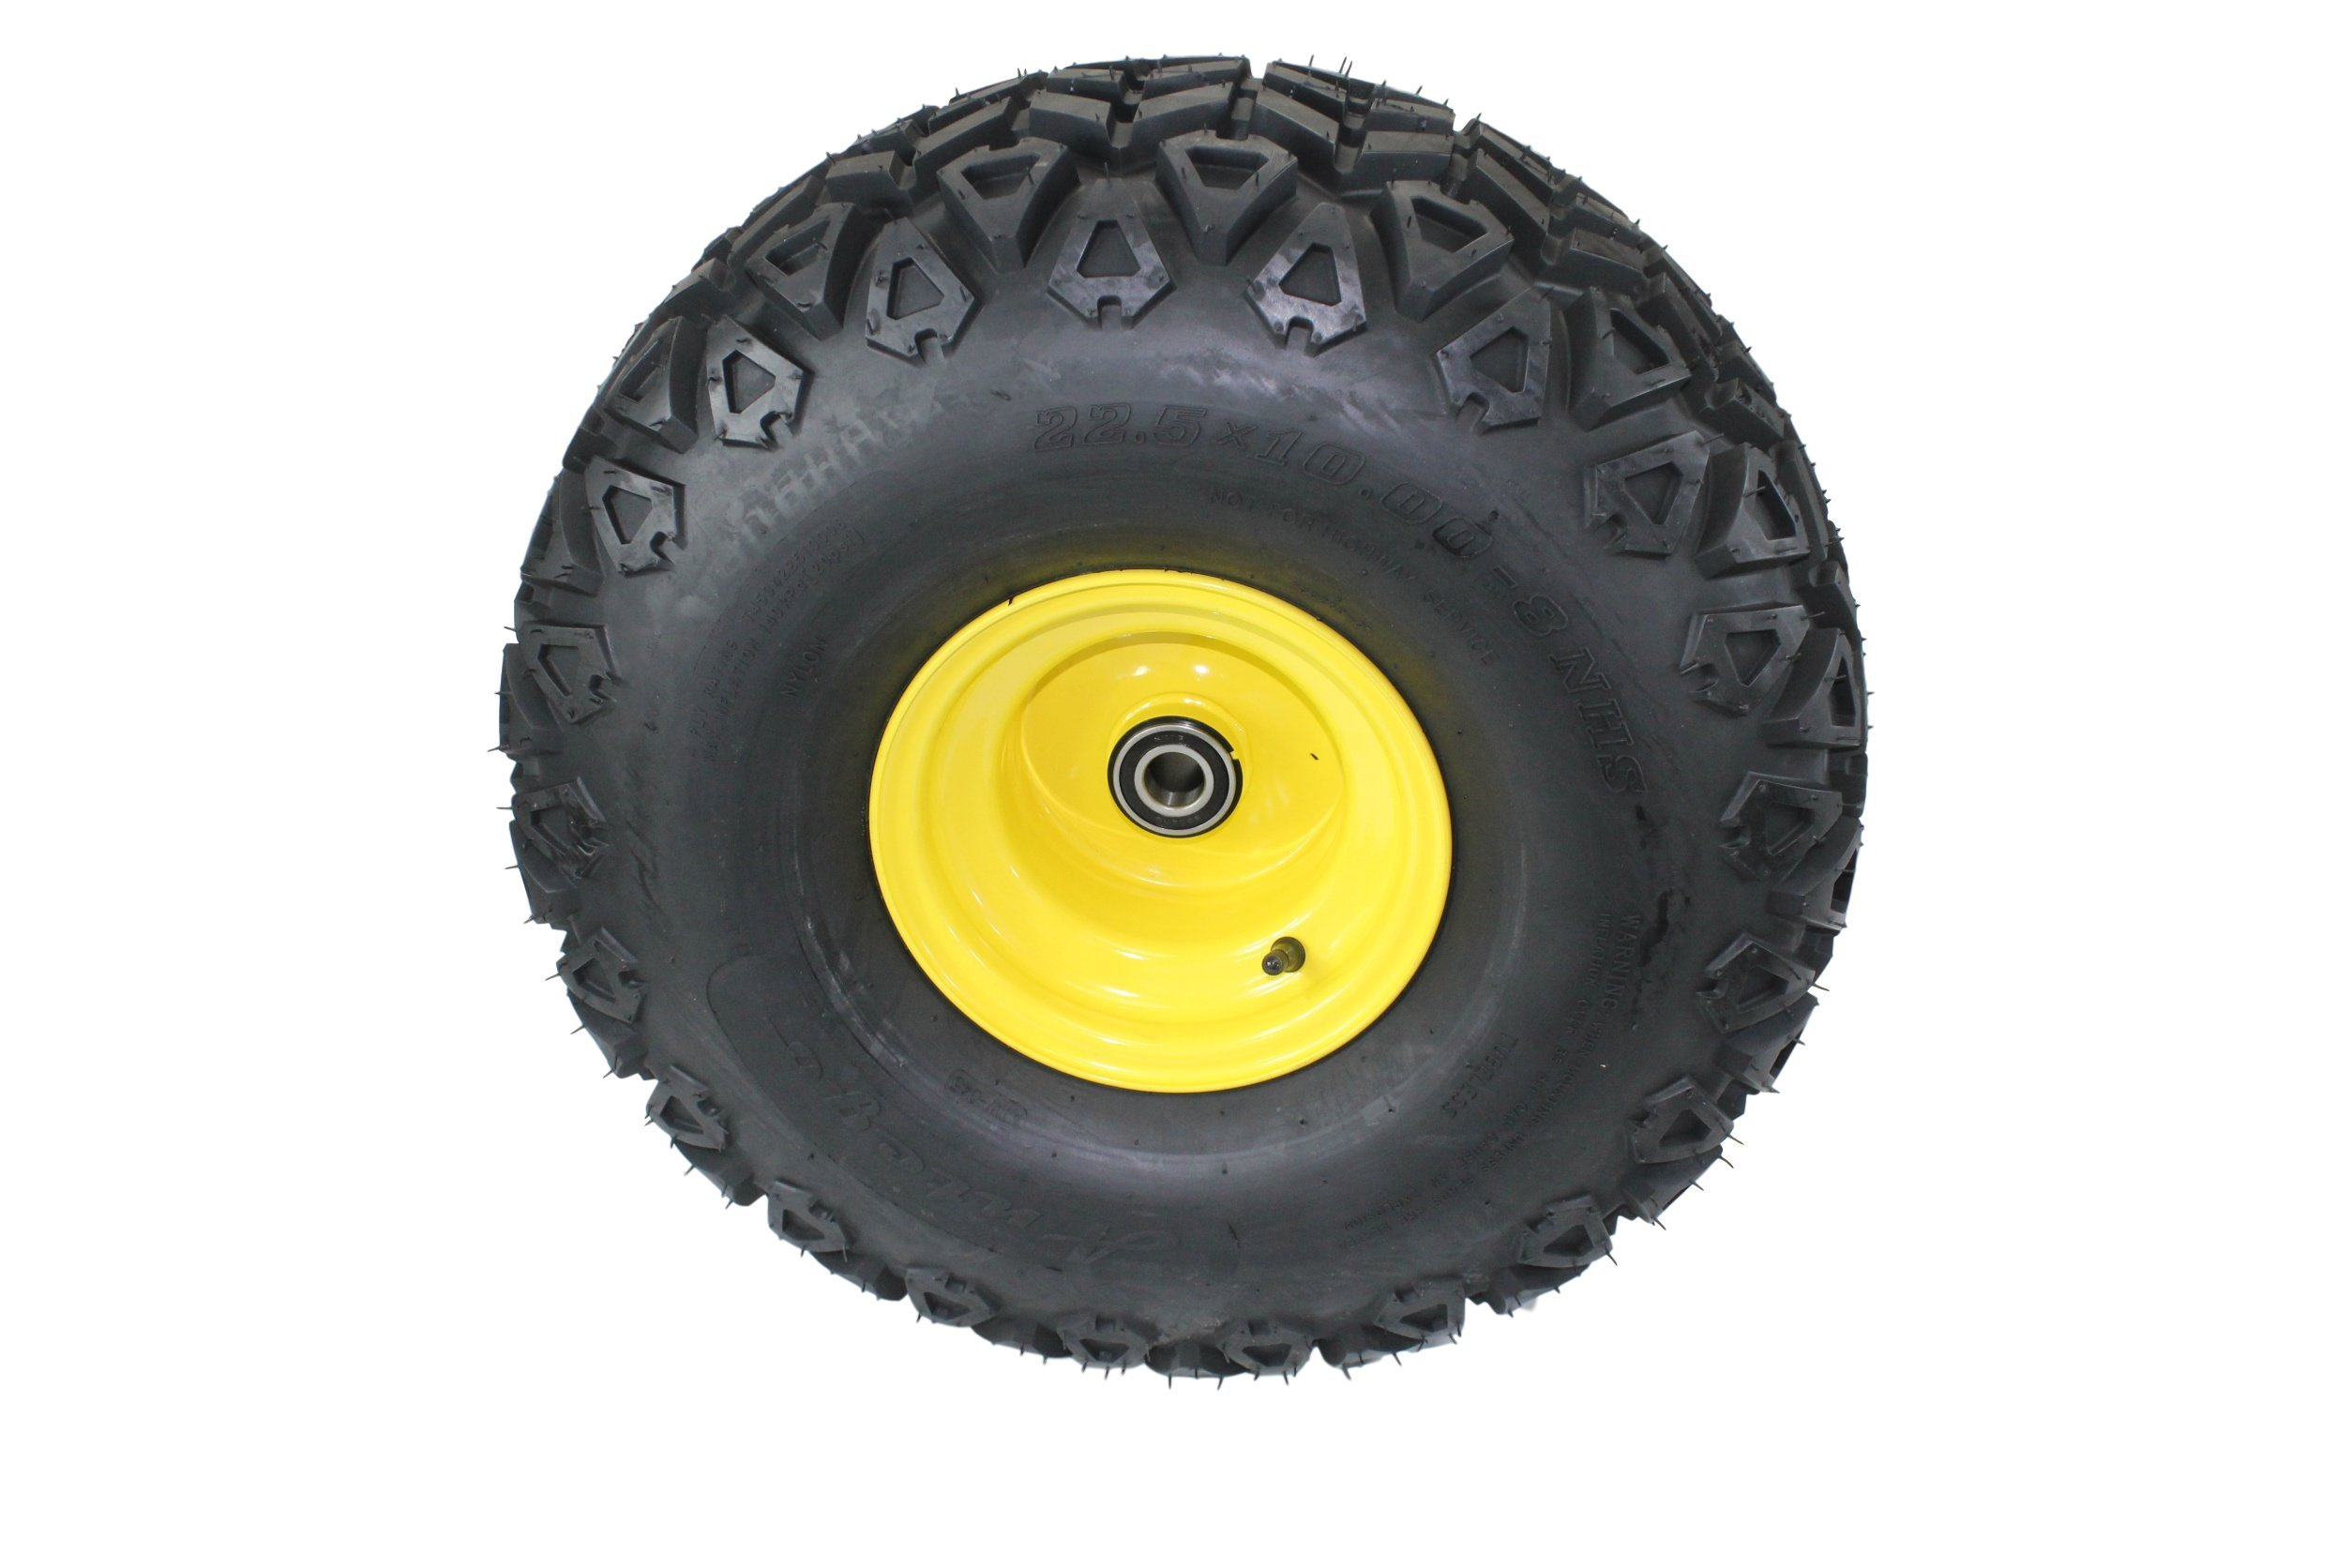 22.5x10.00-8 John Deere Gator Front Wheel and Tire Assy Perfectly Replaces AM143568 M118820